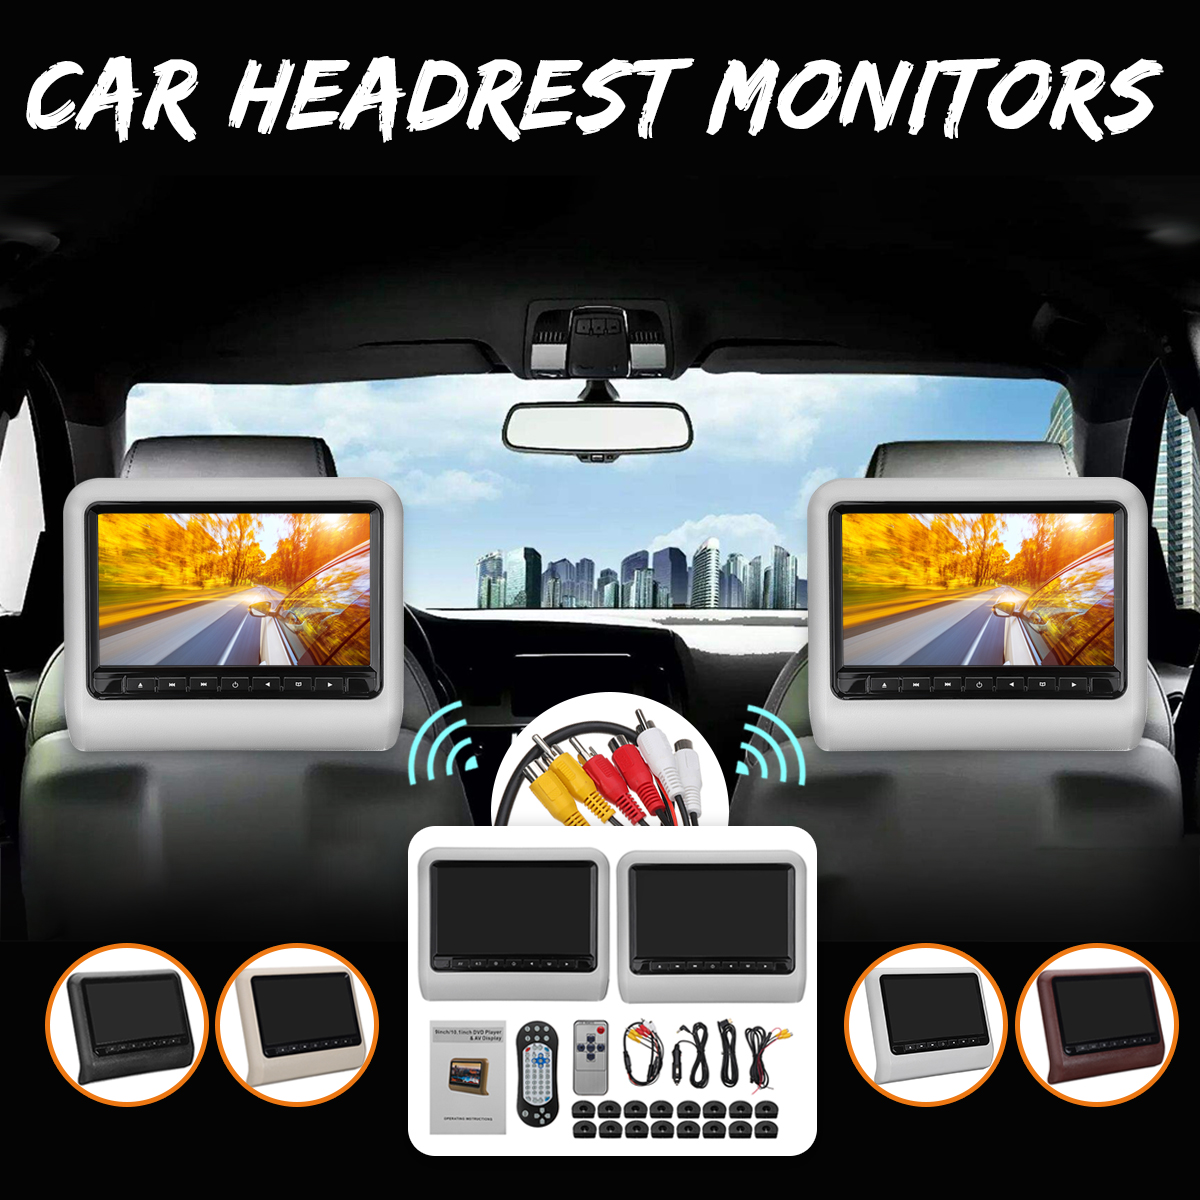 9 inch Car Headrest Monitor DVD Player  +AV Player Monitor Remote Controller with Cable kit LCD Screen Car Digital video Game9 inch Car Headrest Monitor DVD Player  +AV Player Monitor Remote Controller with Cable kit LCD Screen Car Digital video Game